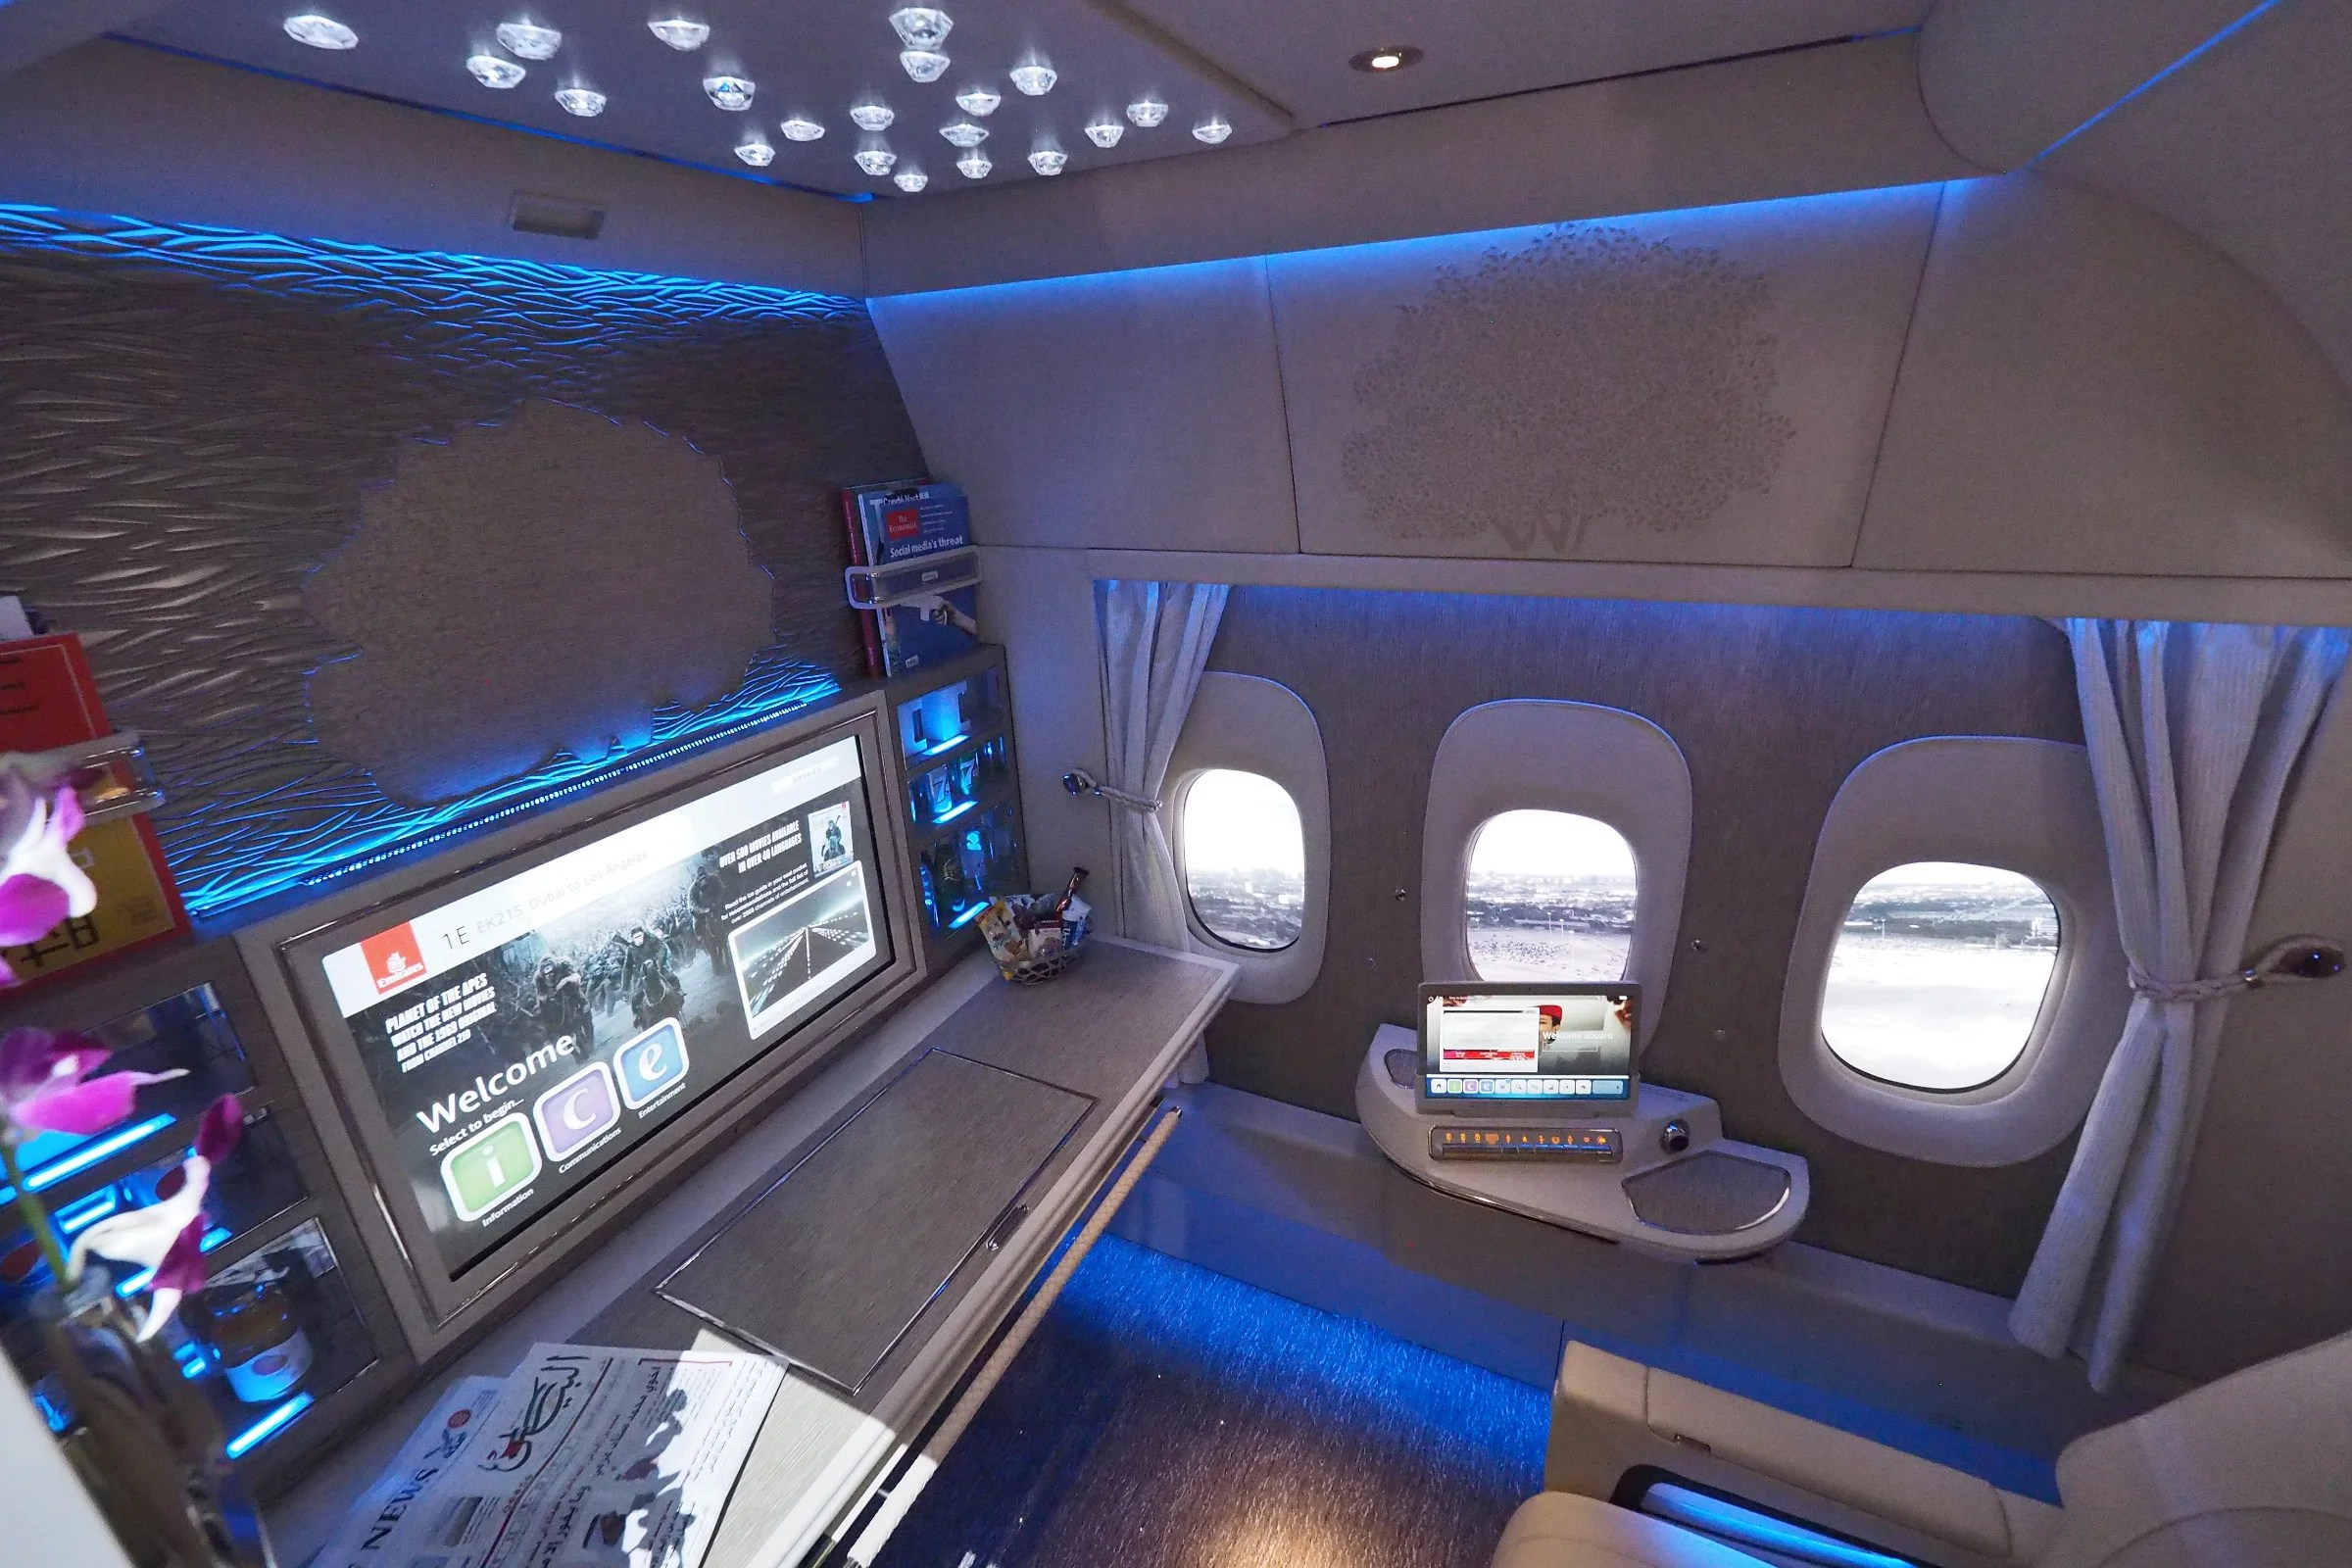 Here S The New Emirates First Class Suite On The 777 300er